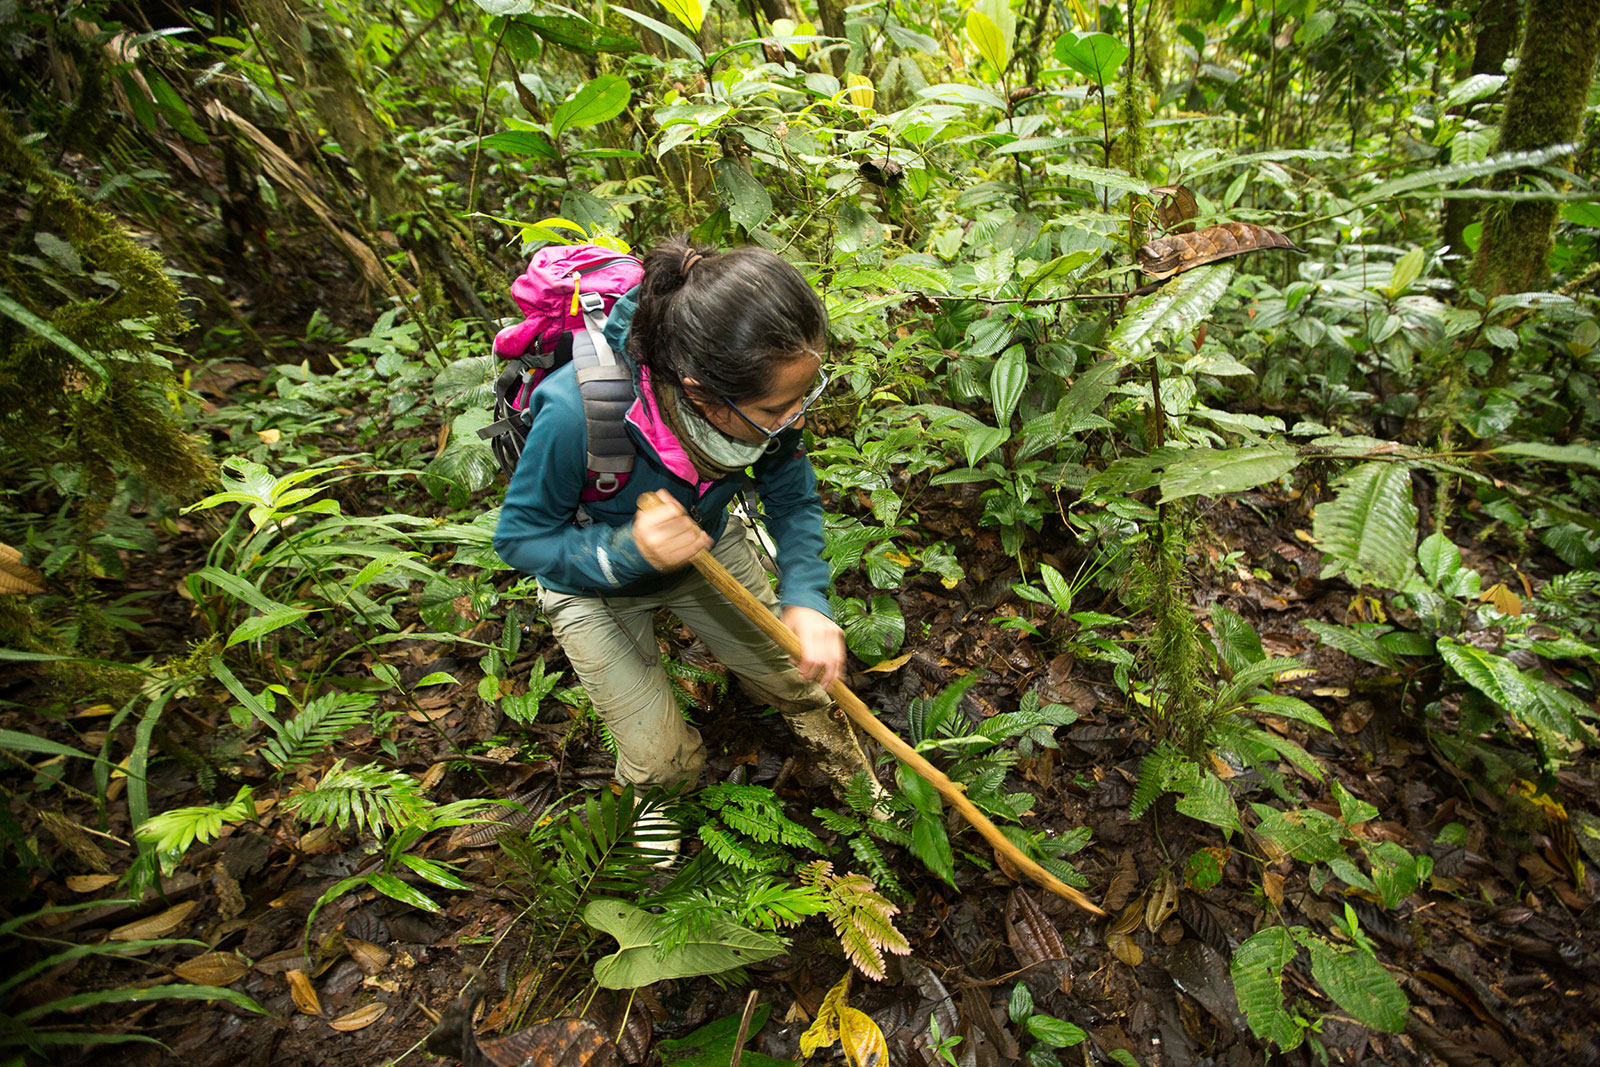 A volunteer inspects the forest floor